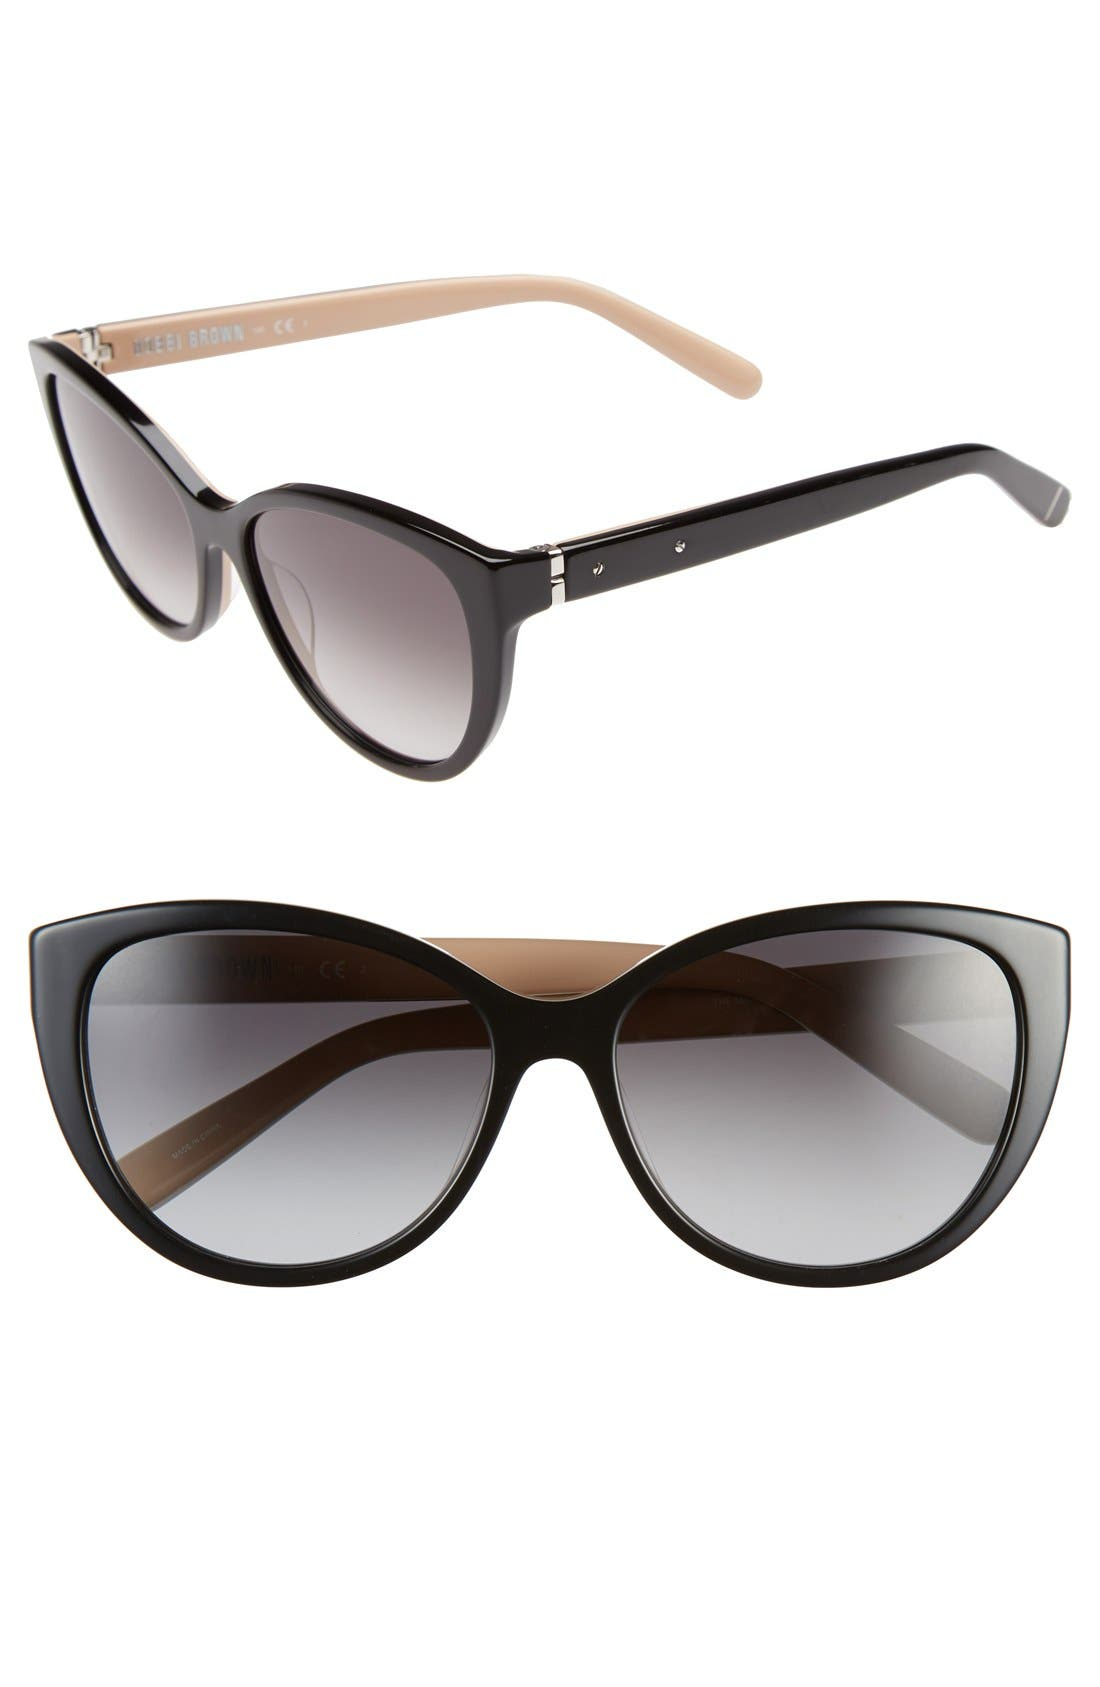 Alternate Image 1 Selected - Bobbi Brown 'The Marylins' 56mm Cat Eye Sunglasses